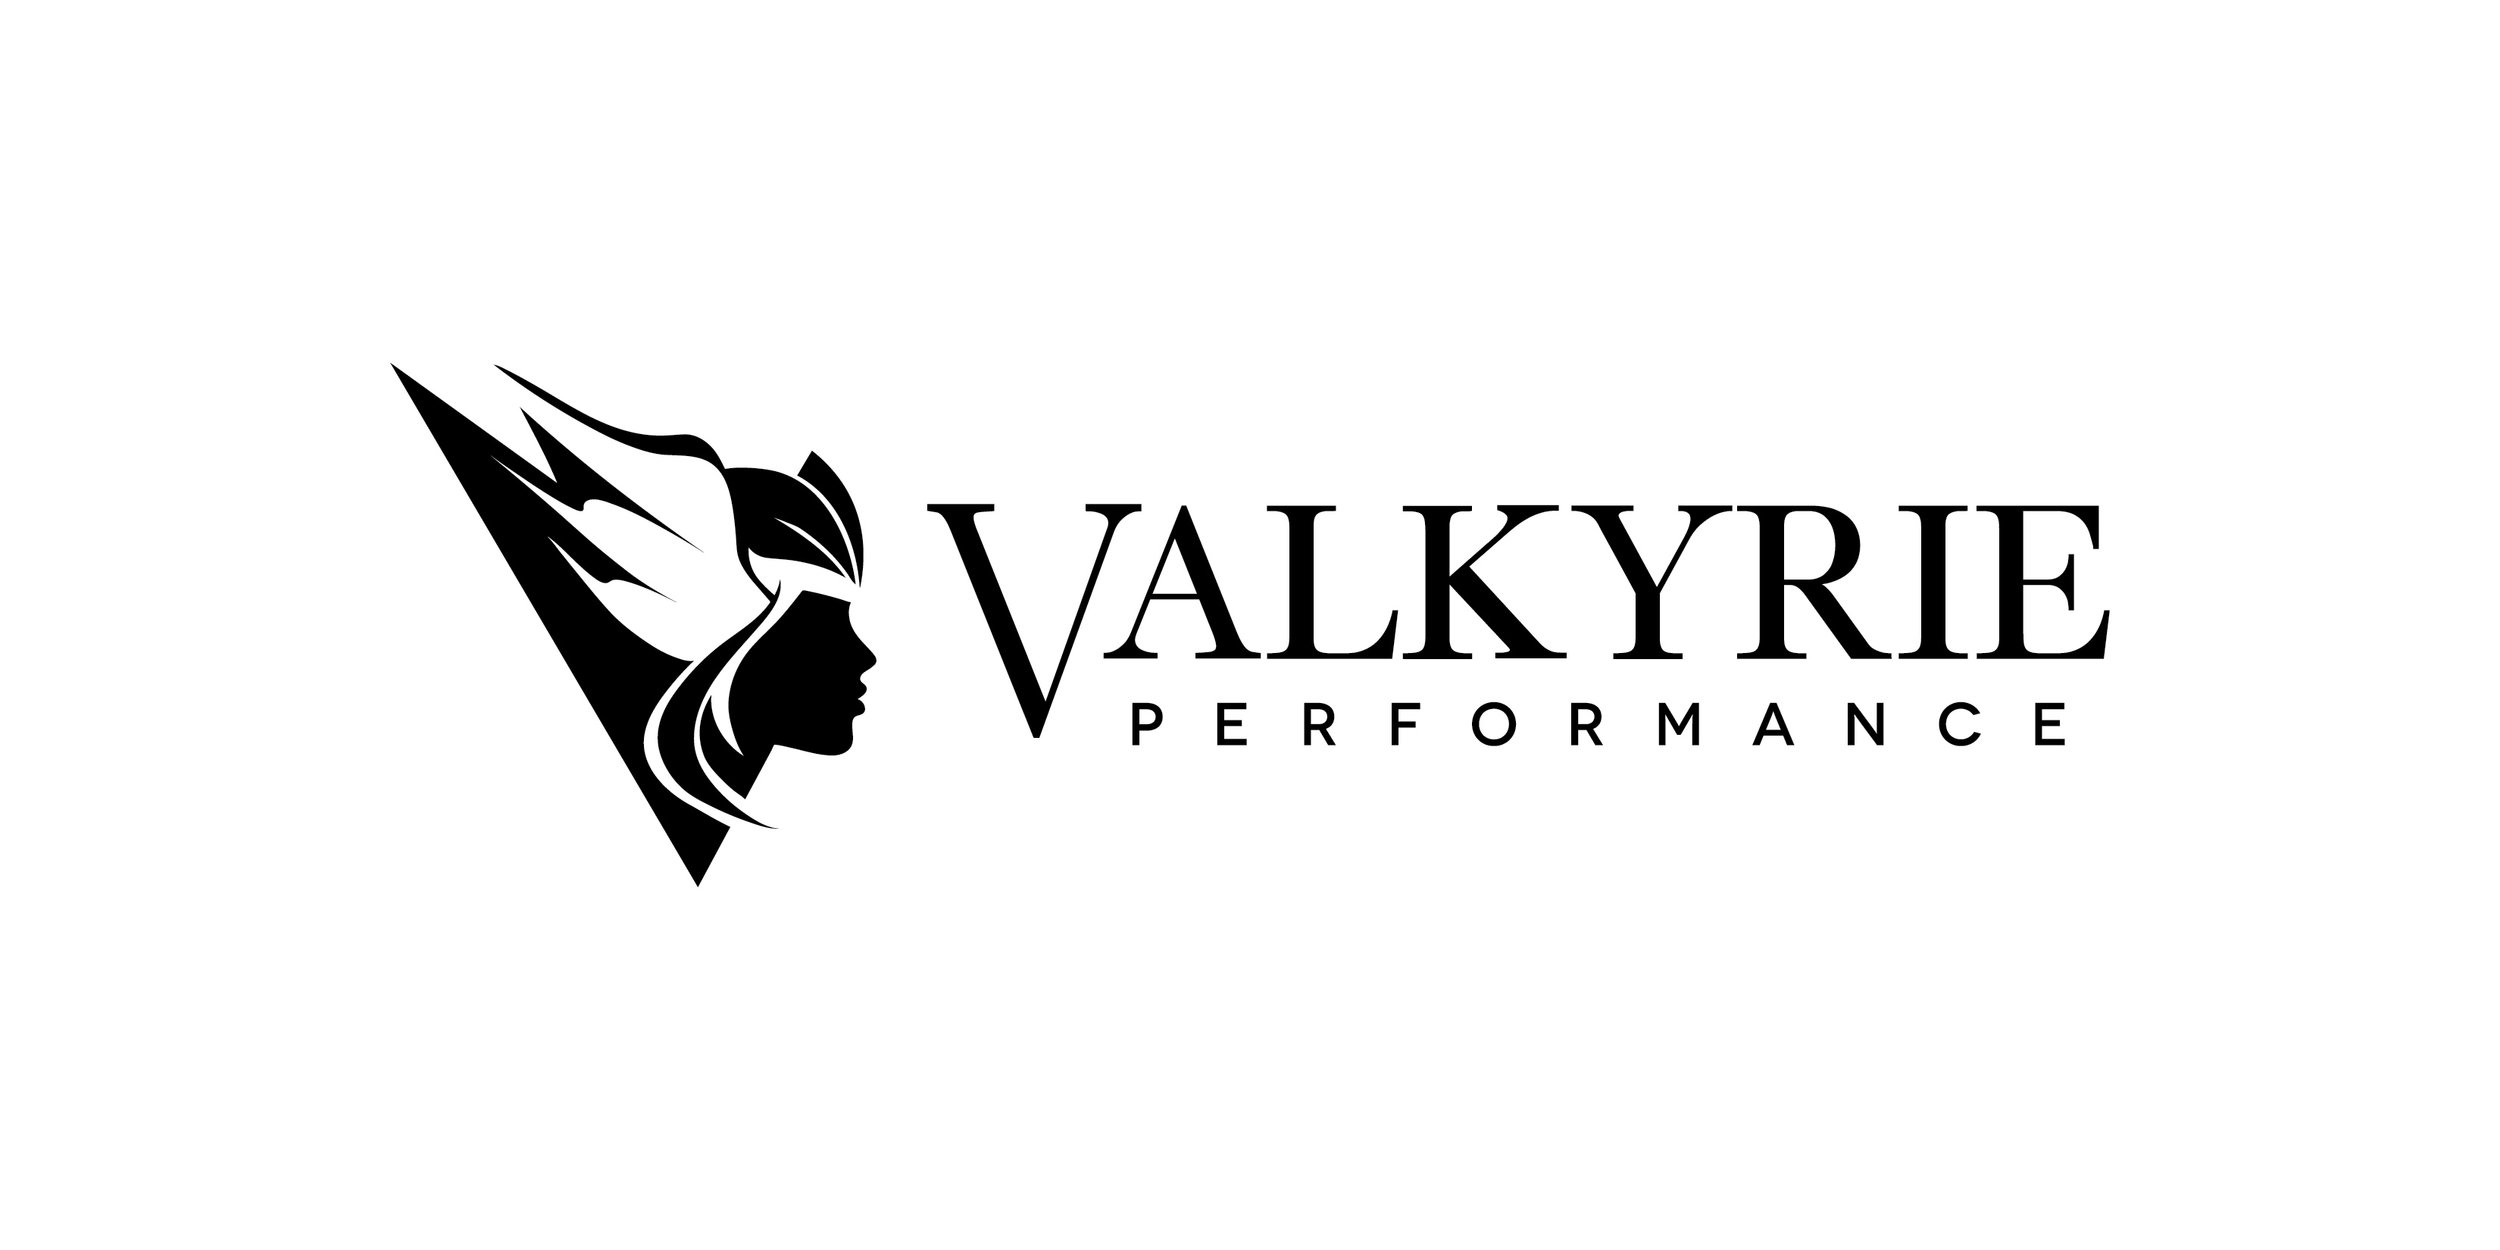 Valkyrie Performance